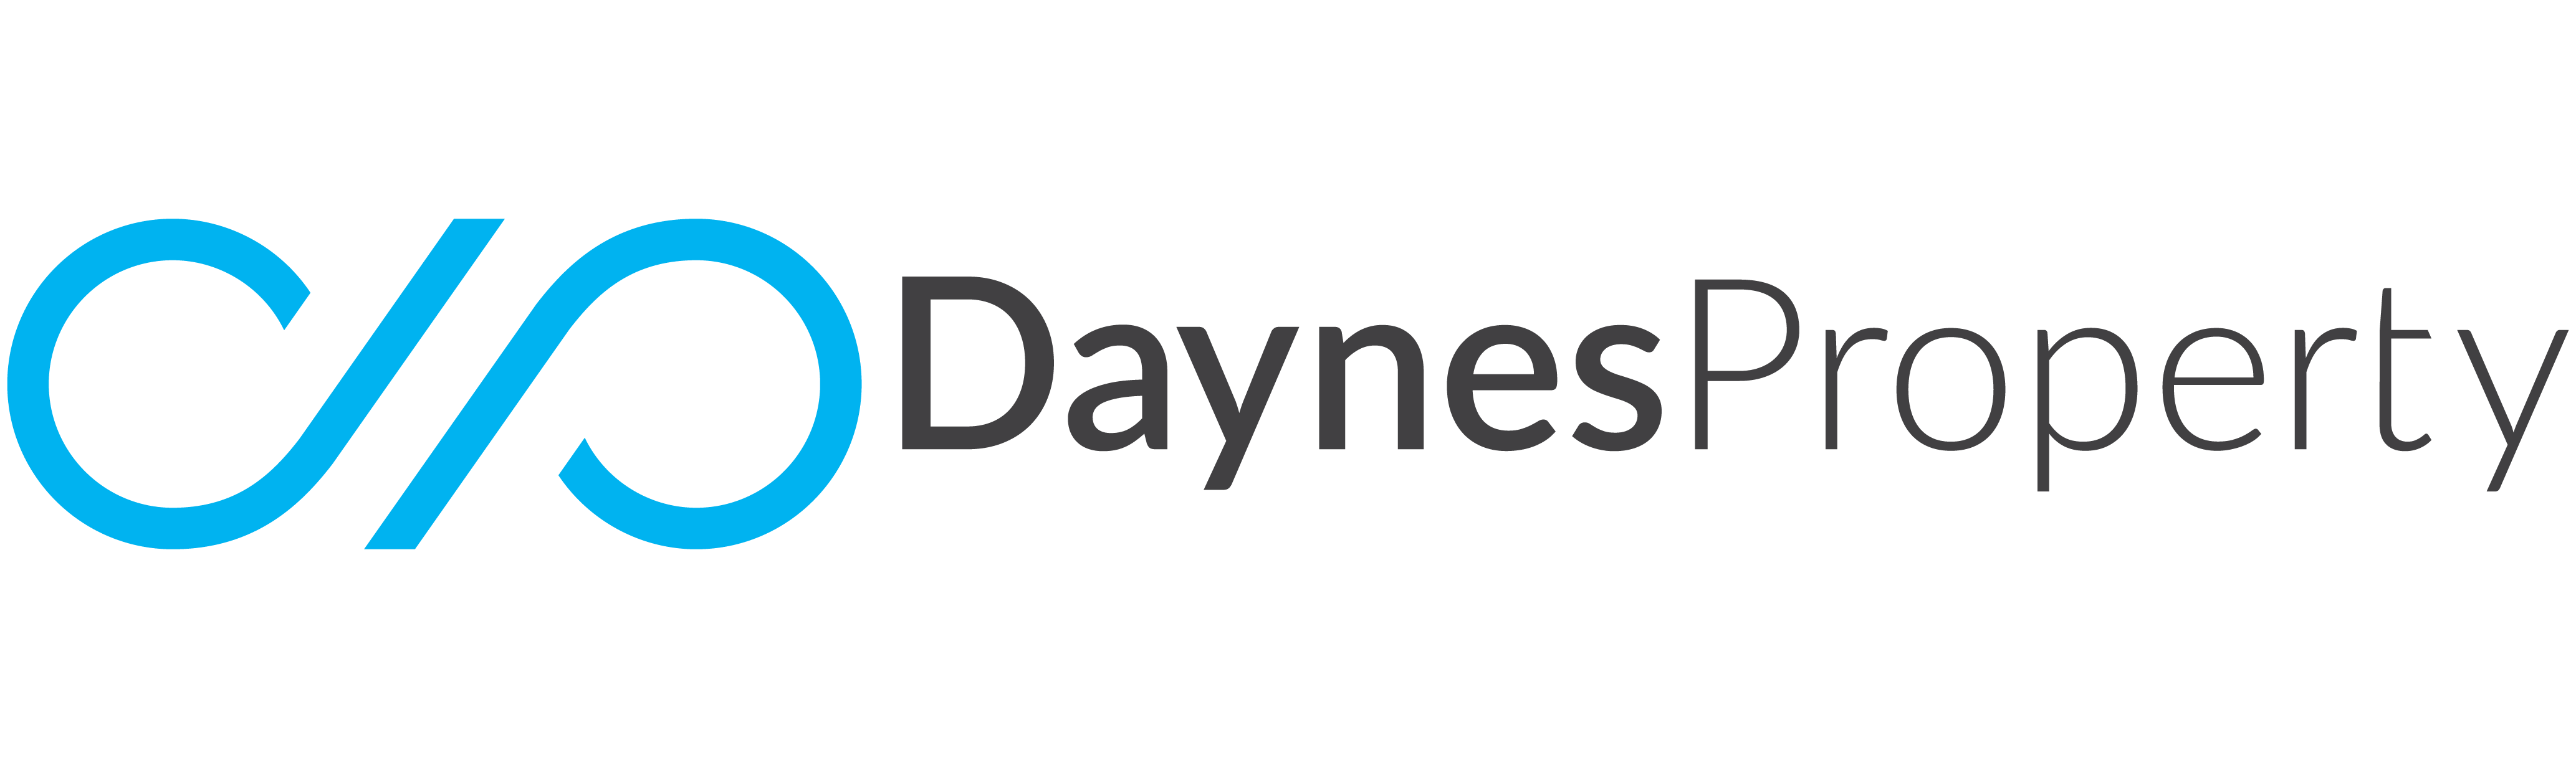 www.daynesproperty.com